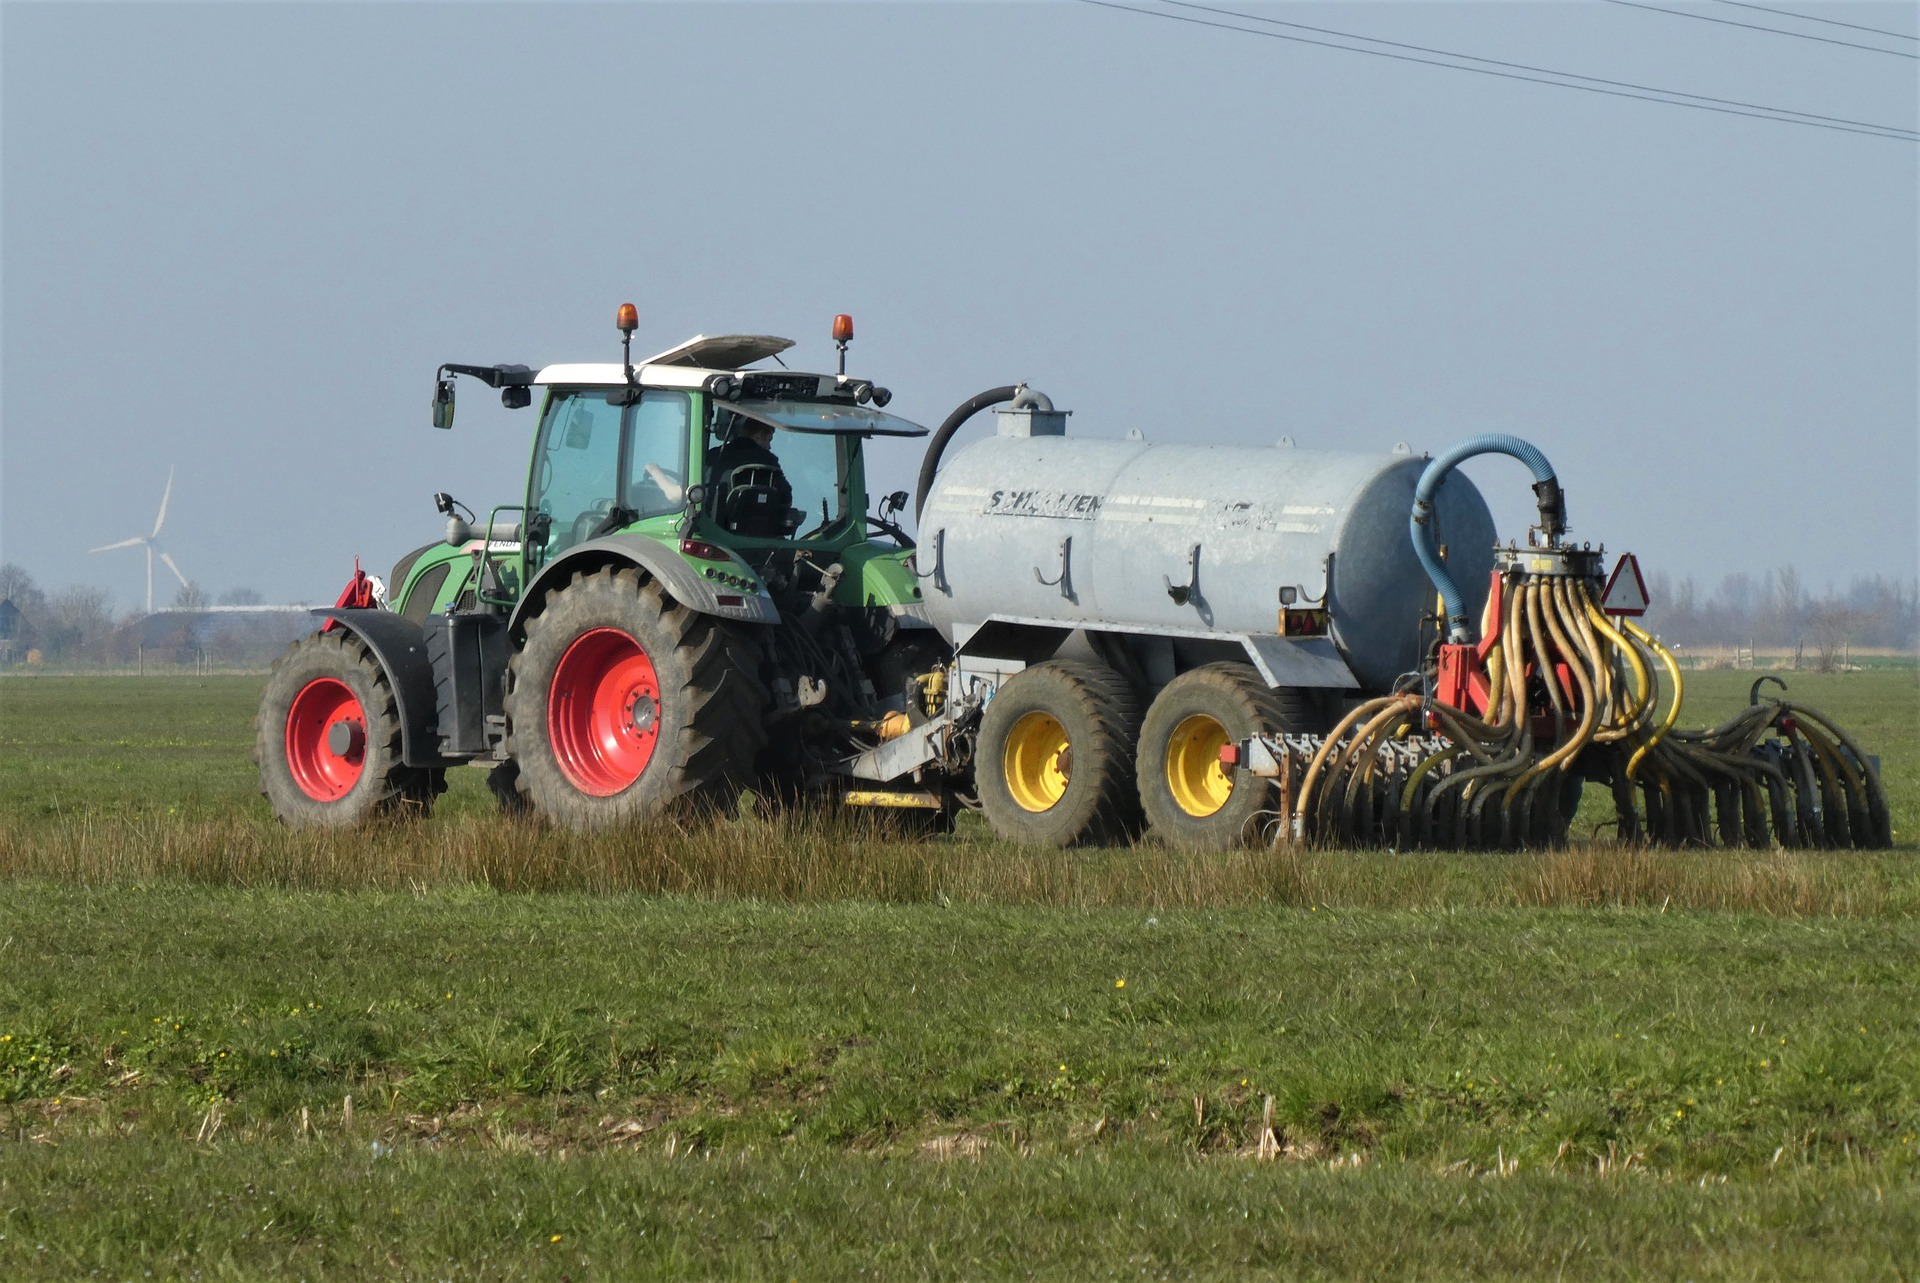 tractor-4990321_1920